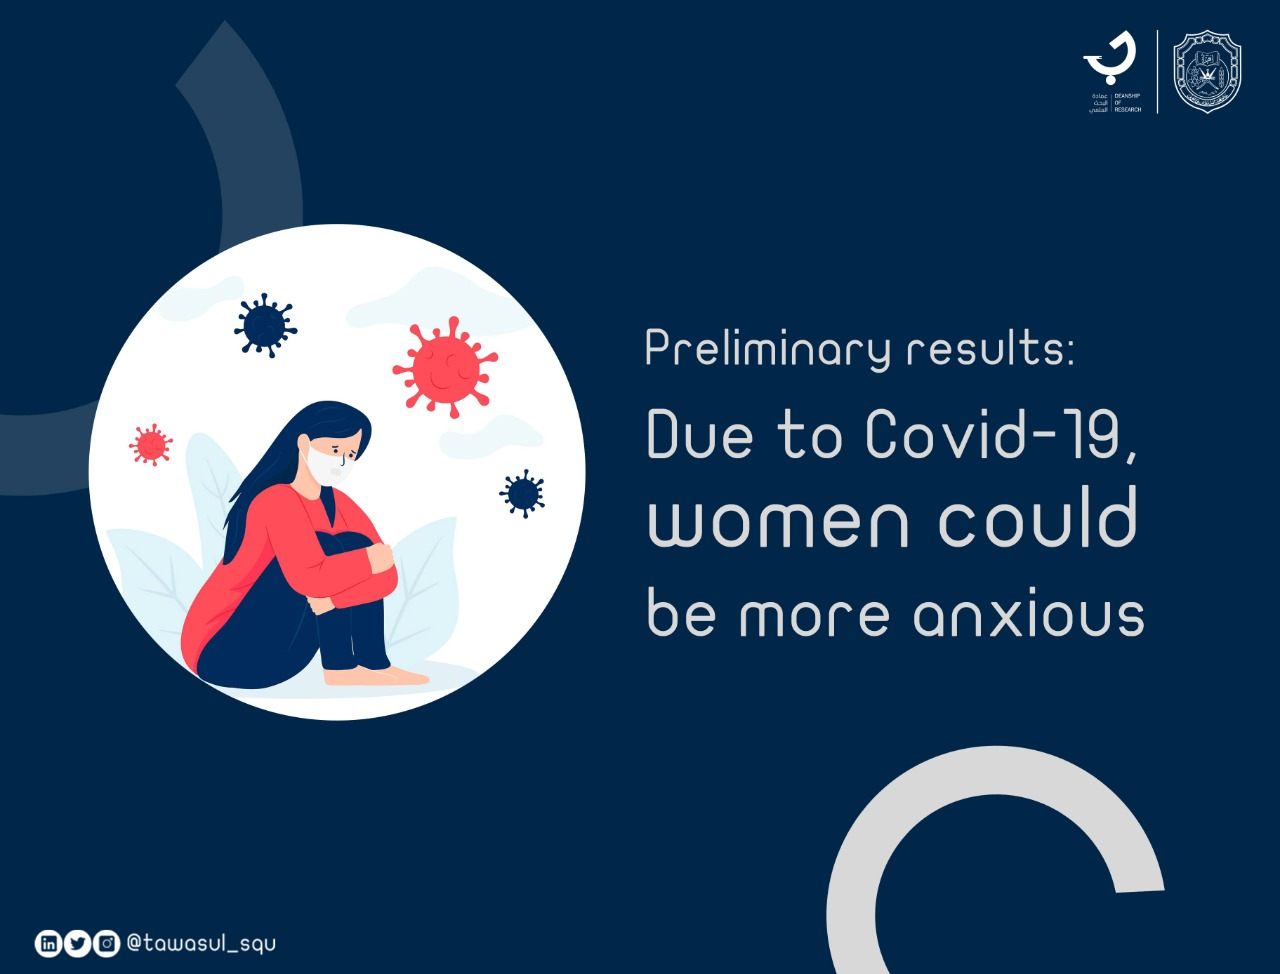 Preliminary results: Women are more likely to be anxious due to Covid 19